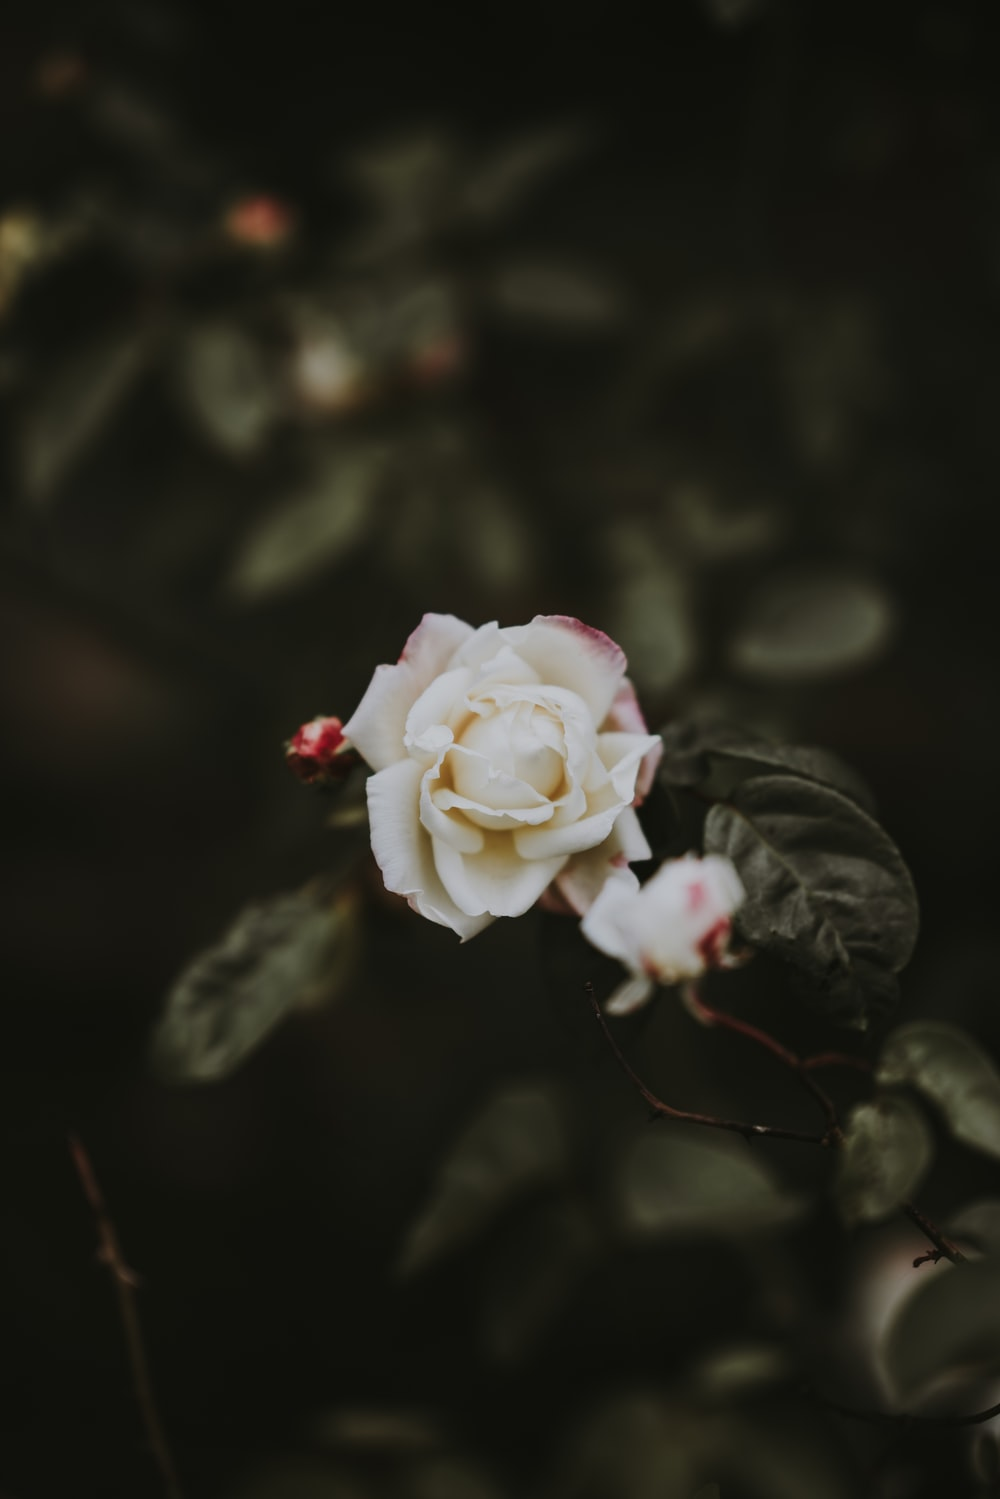 500 White Rose Pictures Hd Download Free Images On Unsplash